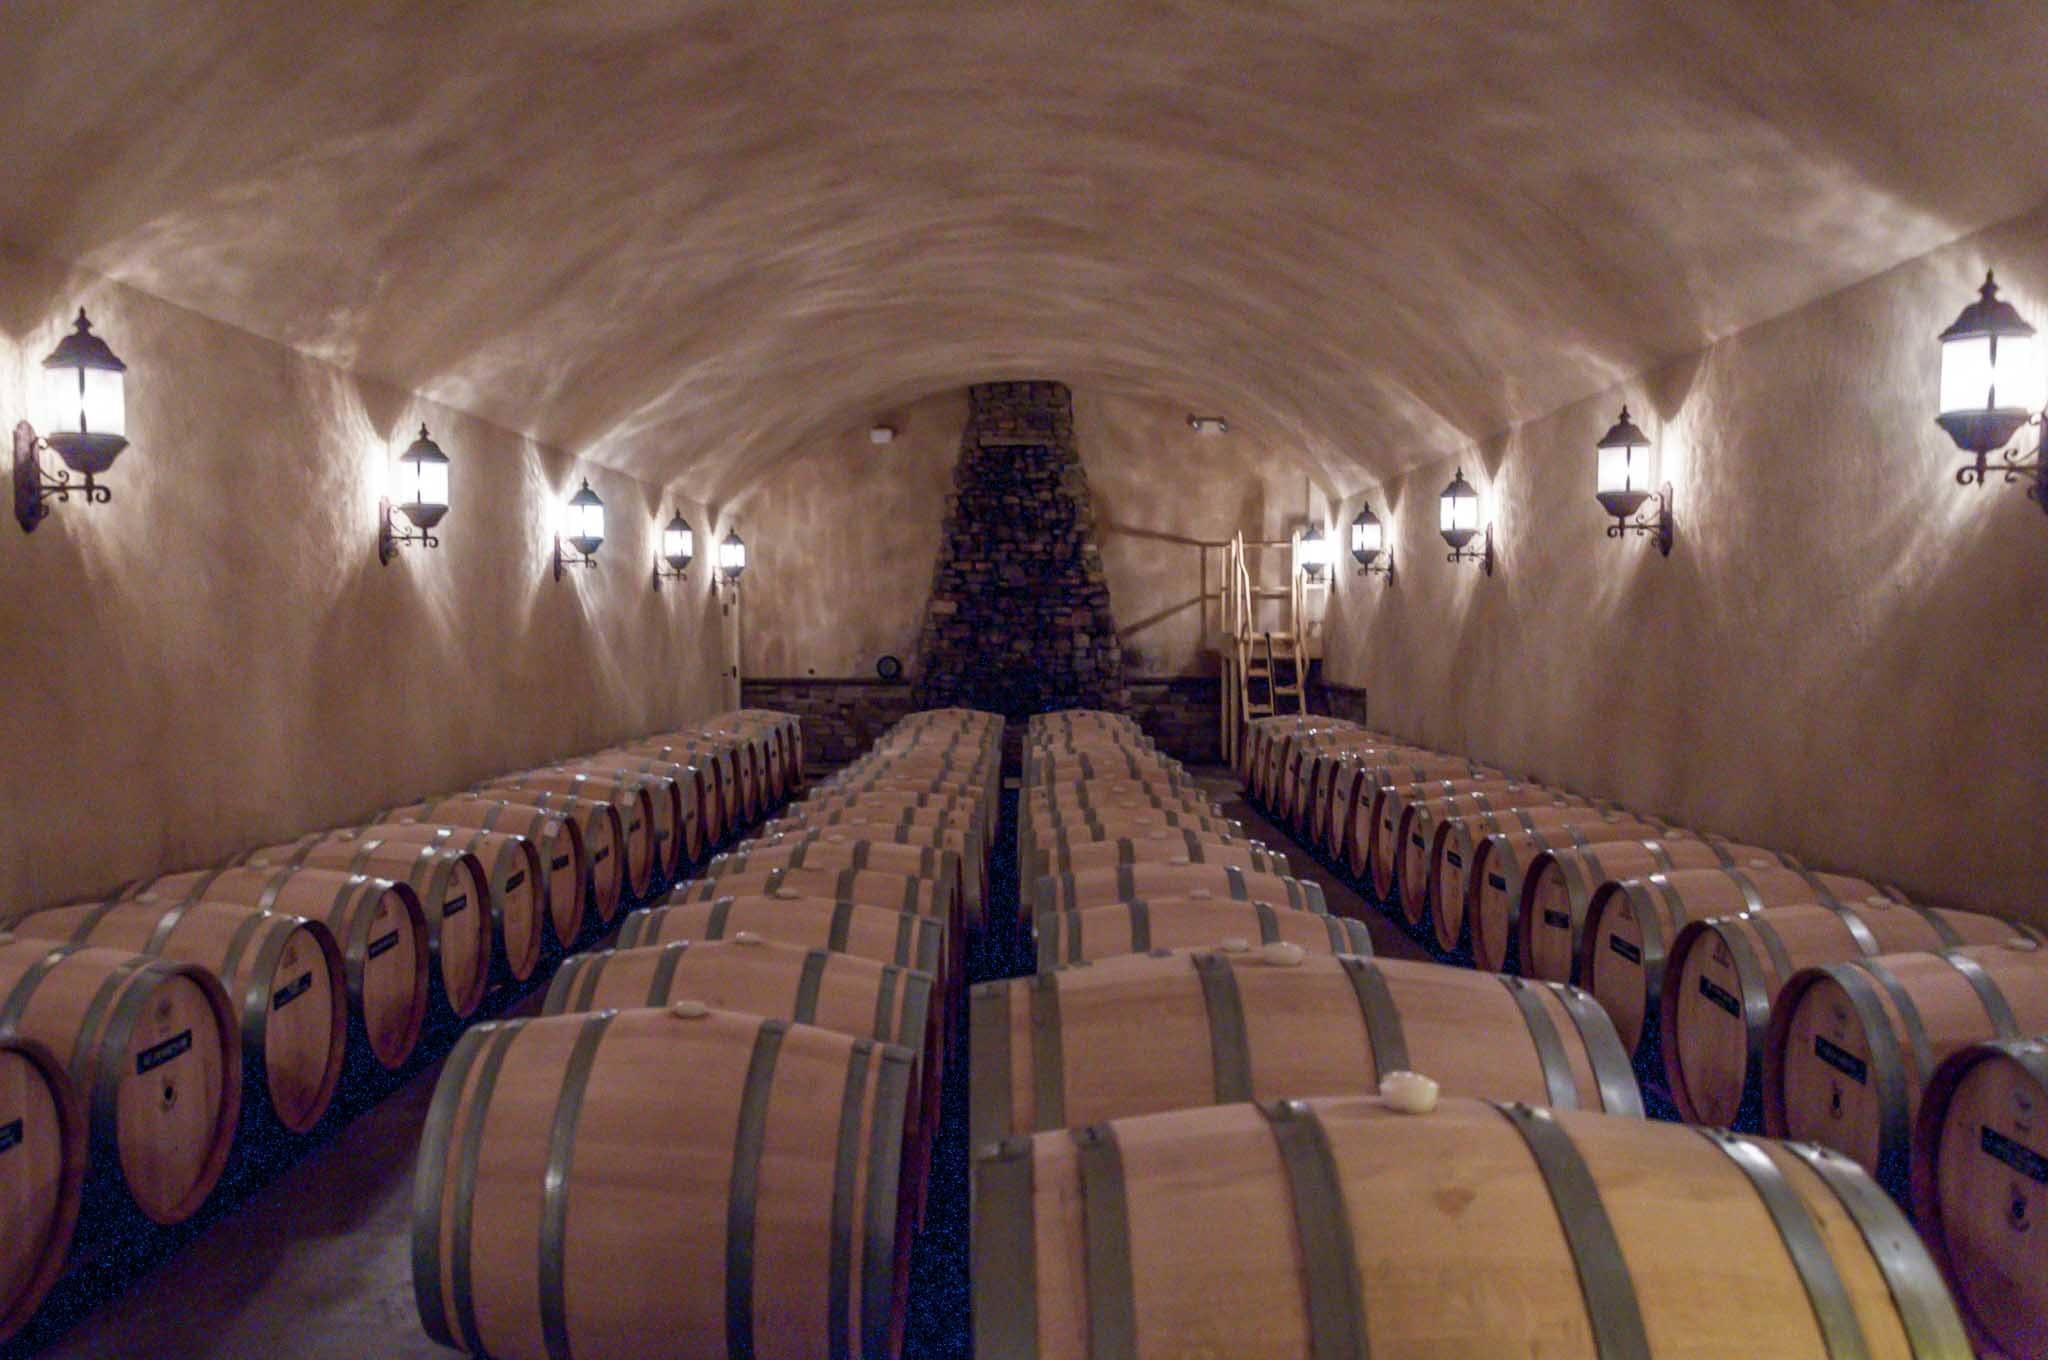 Room filled with wine barrels